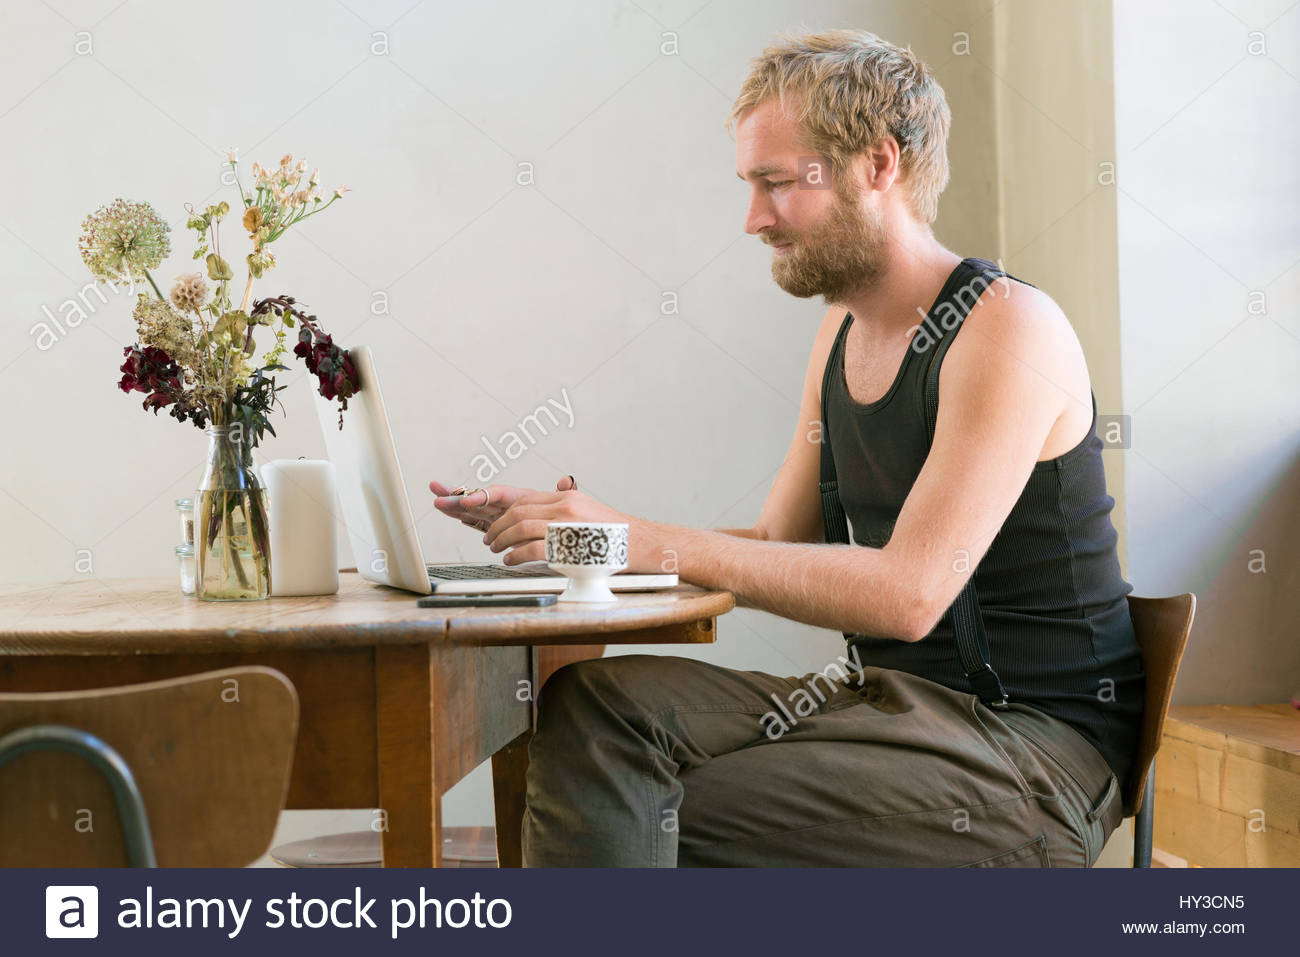 Sweden, Man using laptop and smart phone - Stock Image